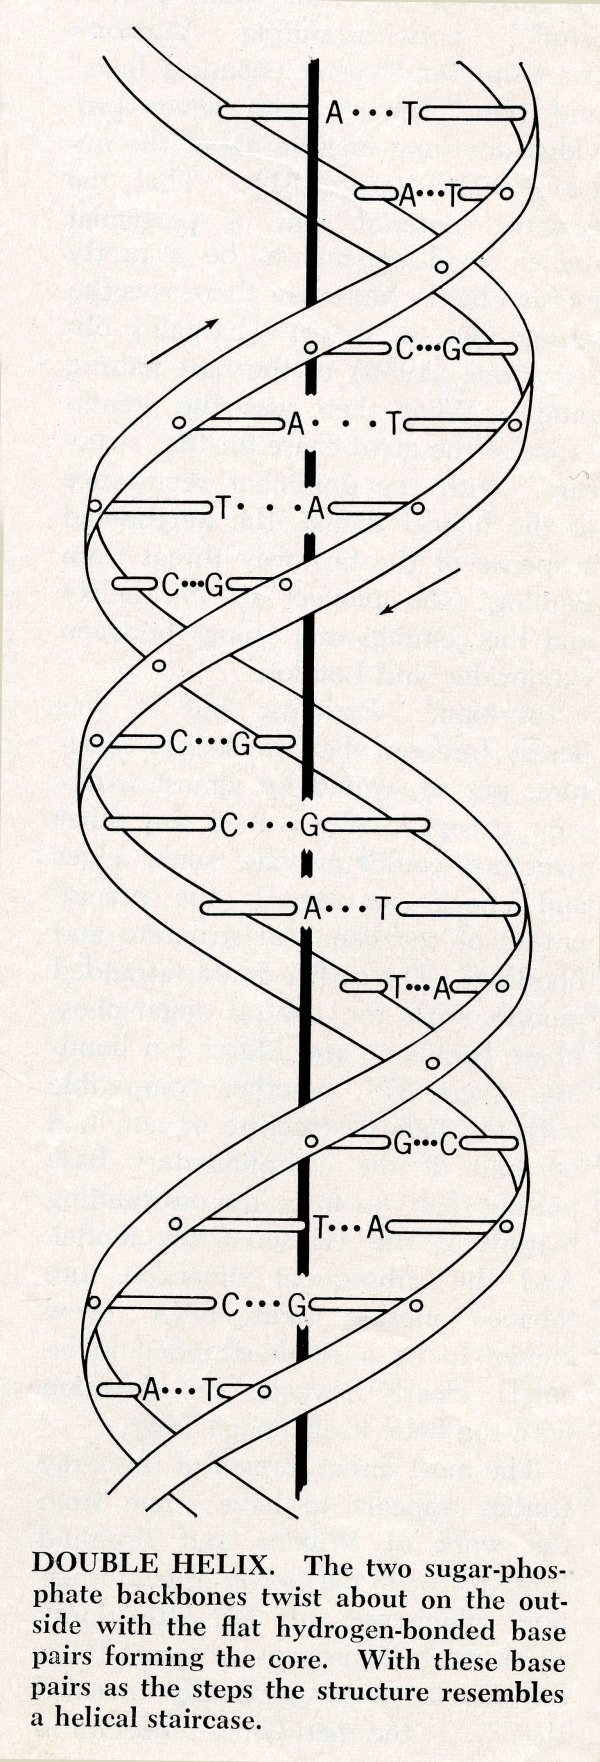 The Watson and Crick Structure of DNA | PaulingBlog